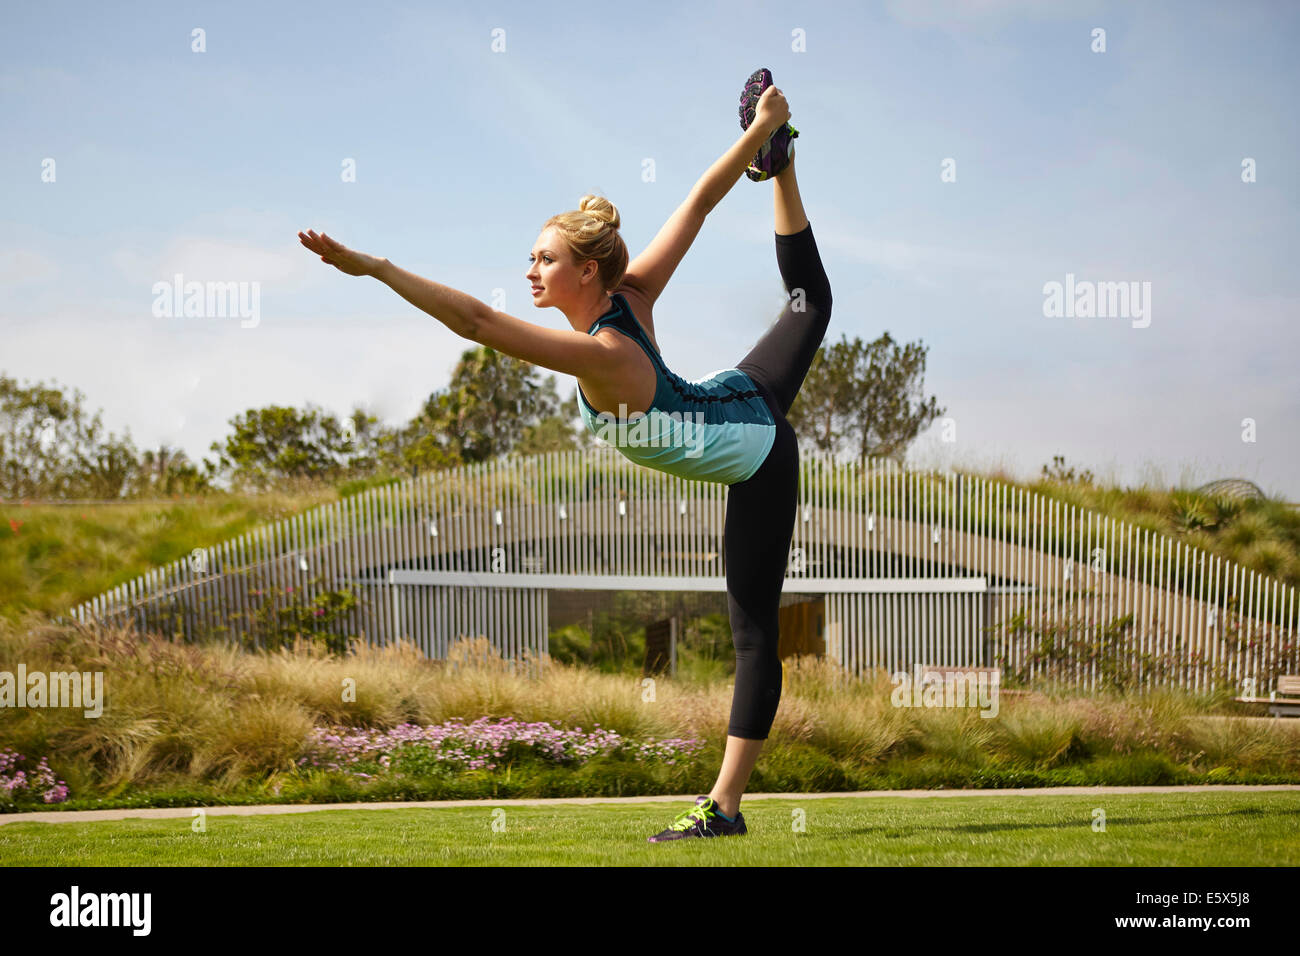 Woman practising yoga in park - Stock Image